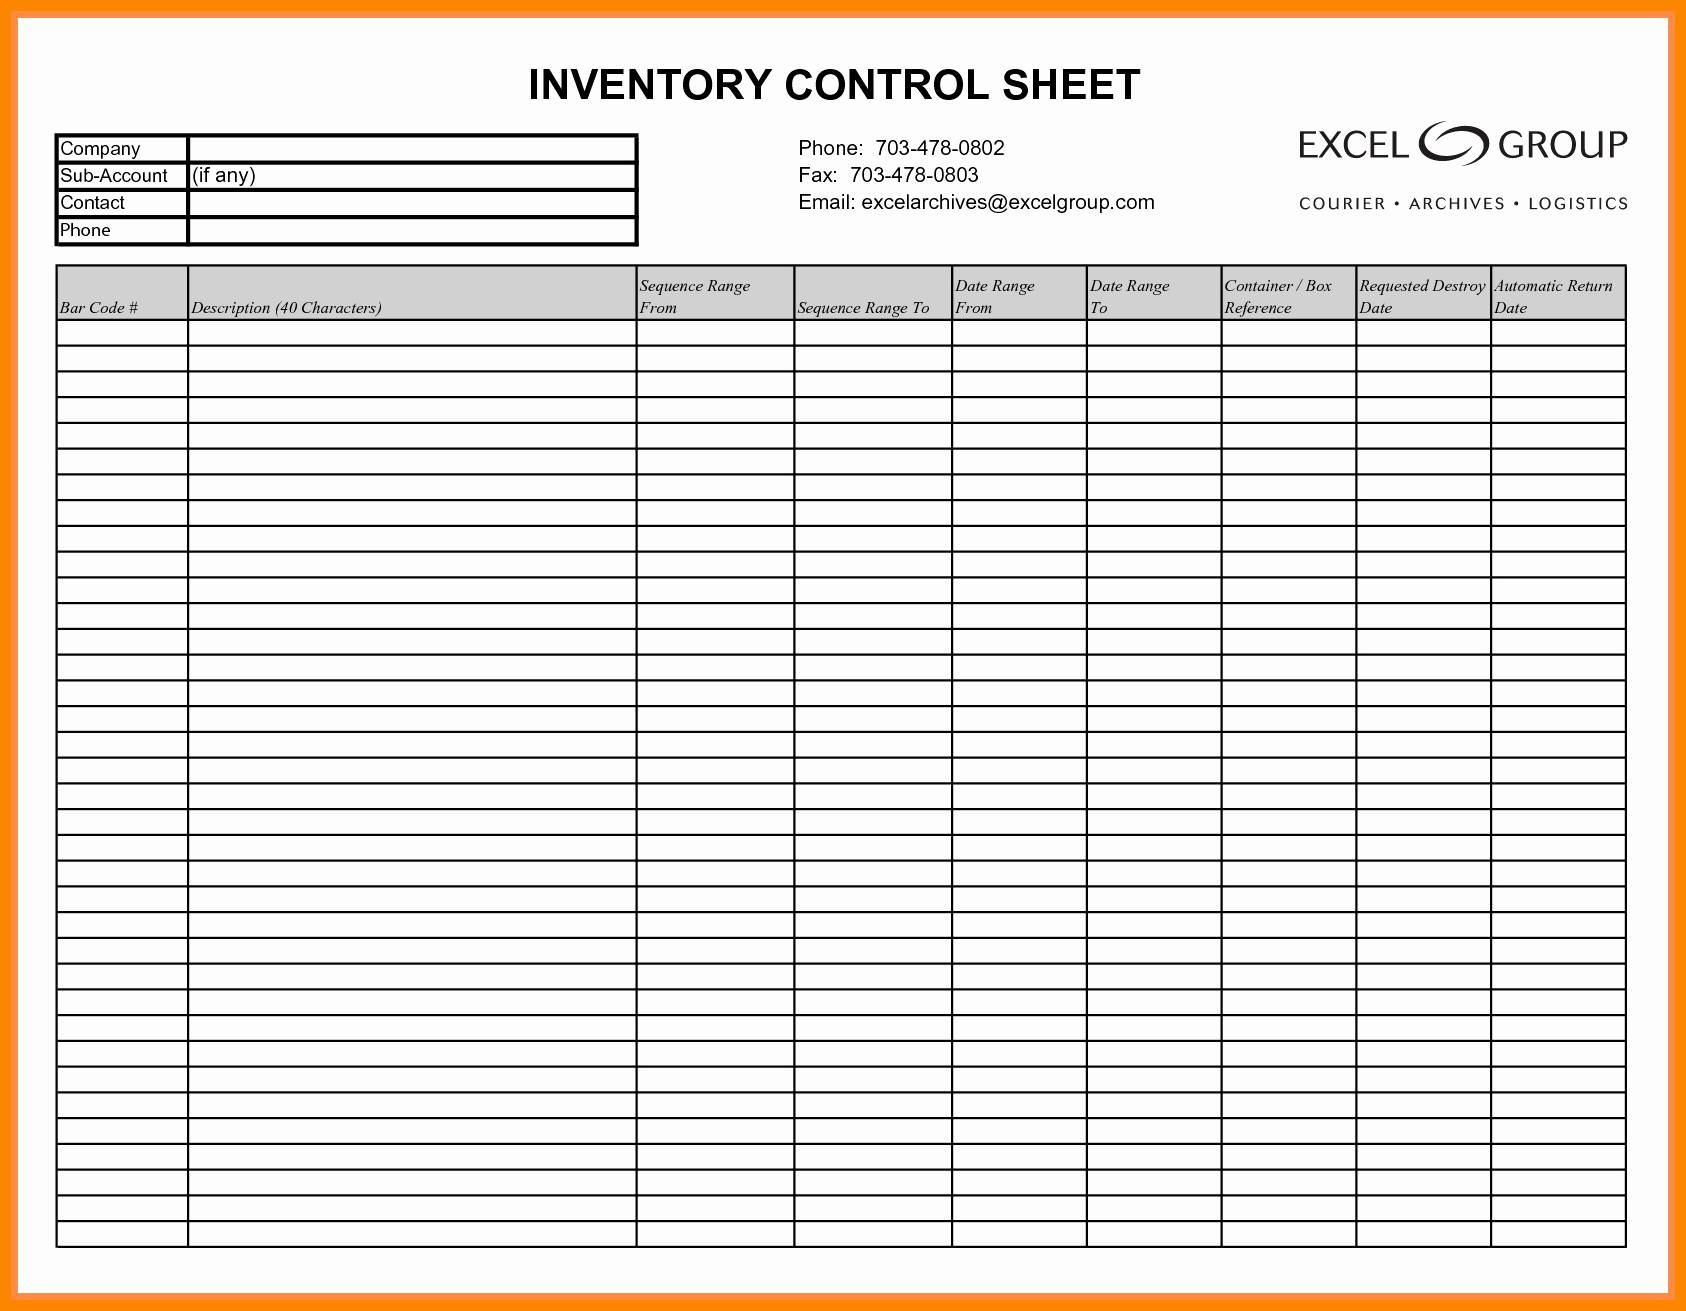 Liquor Inventory Control Sheet Template